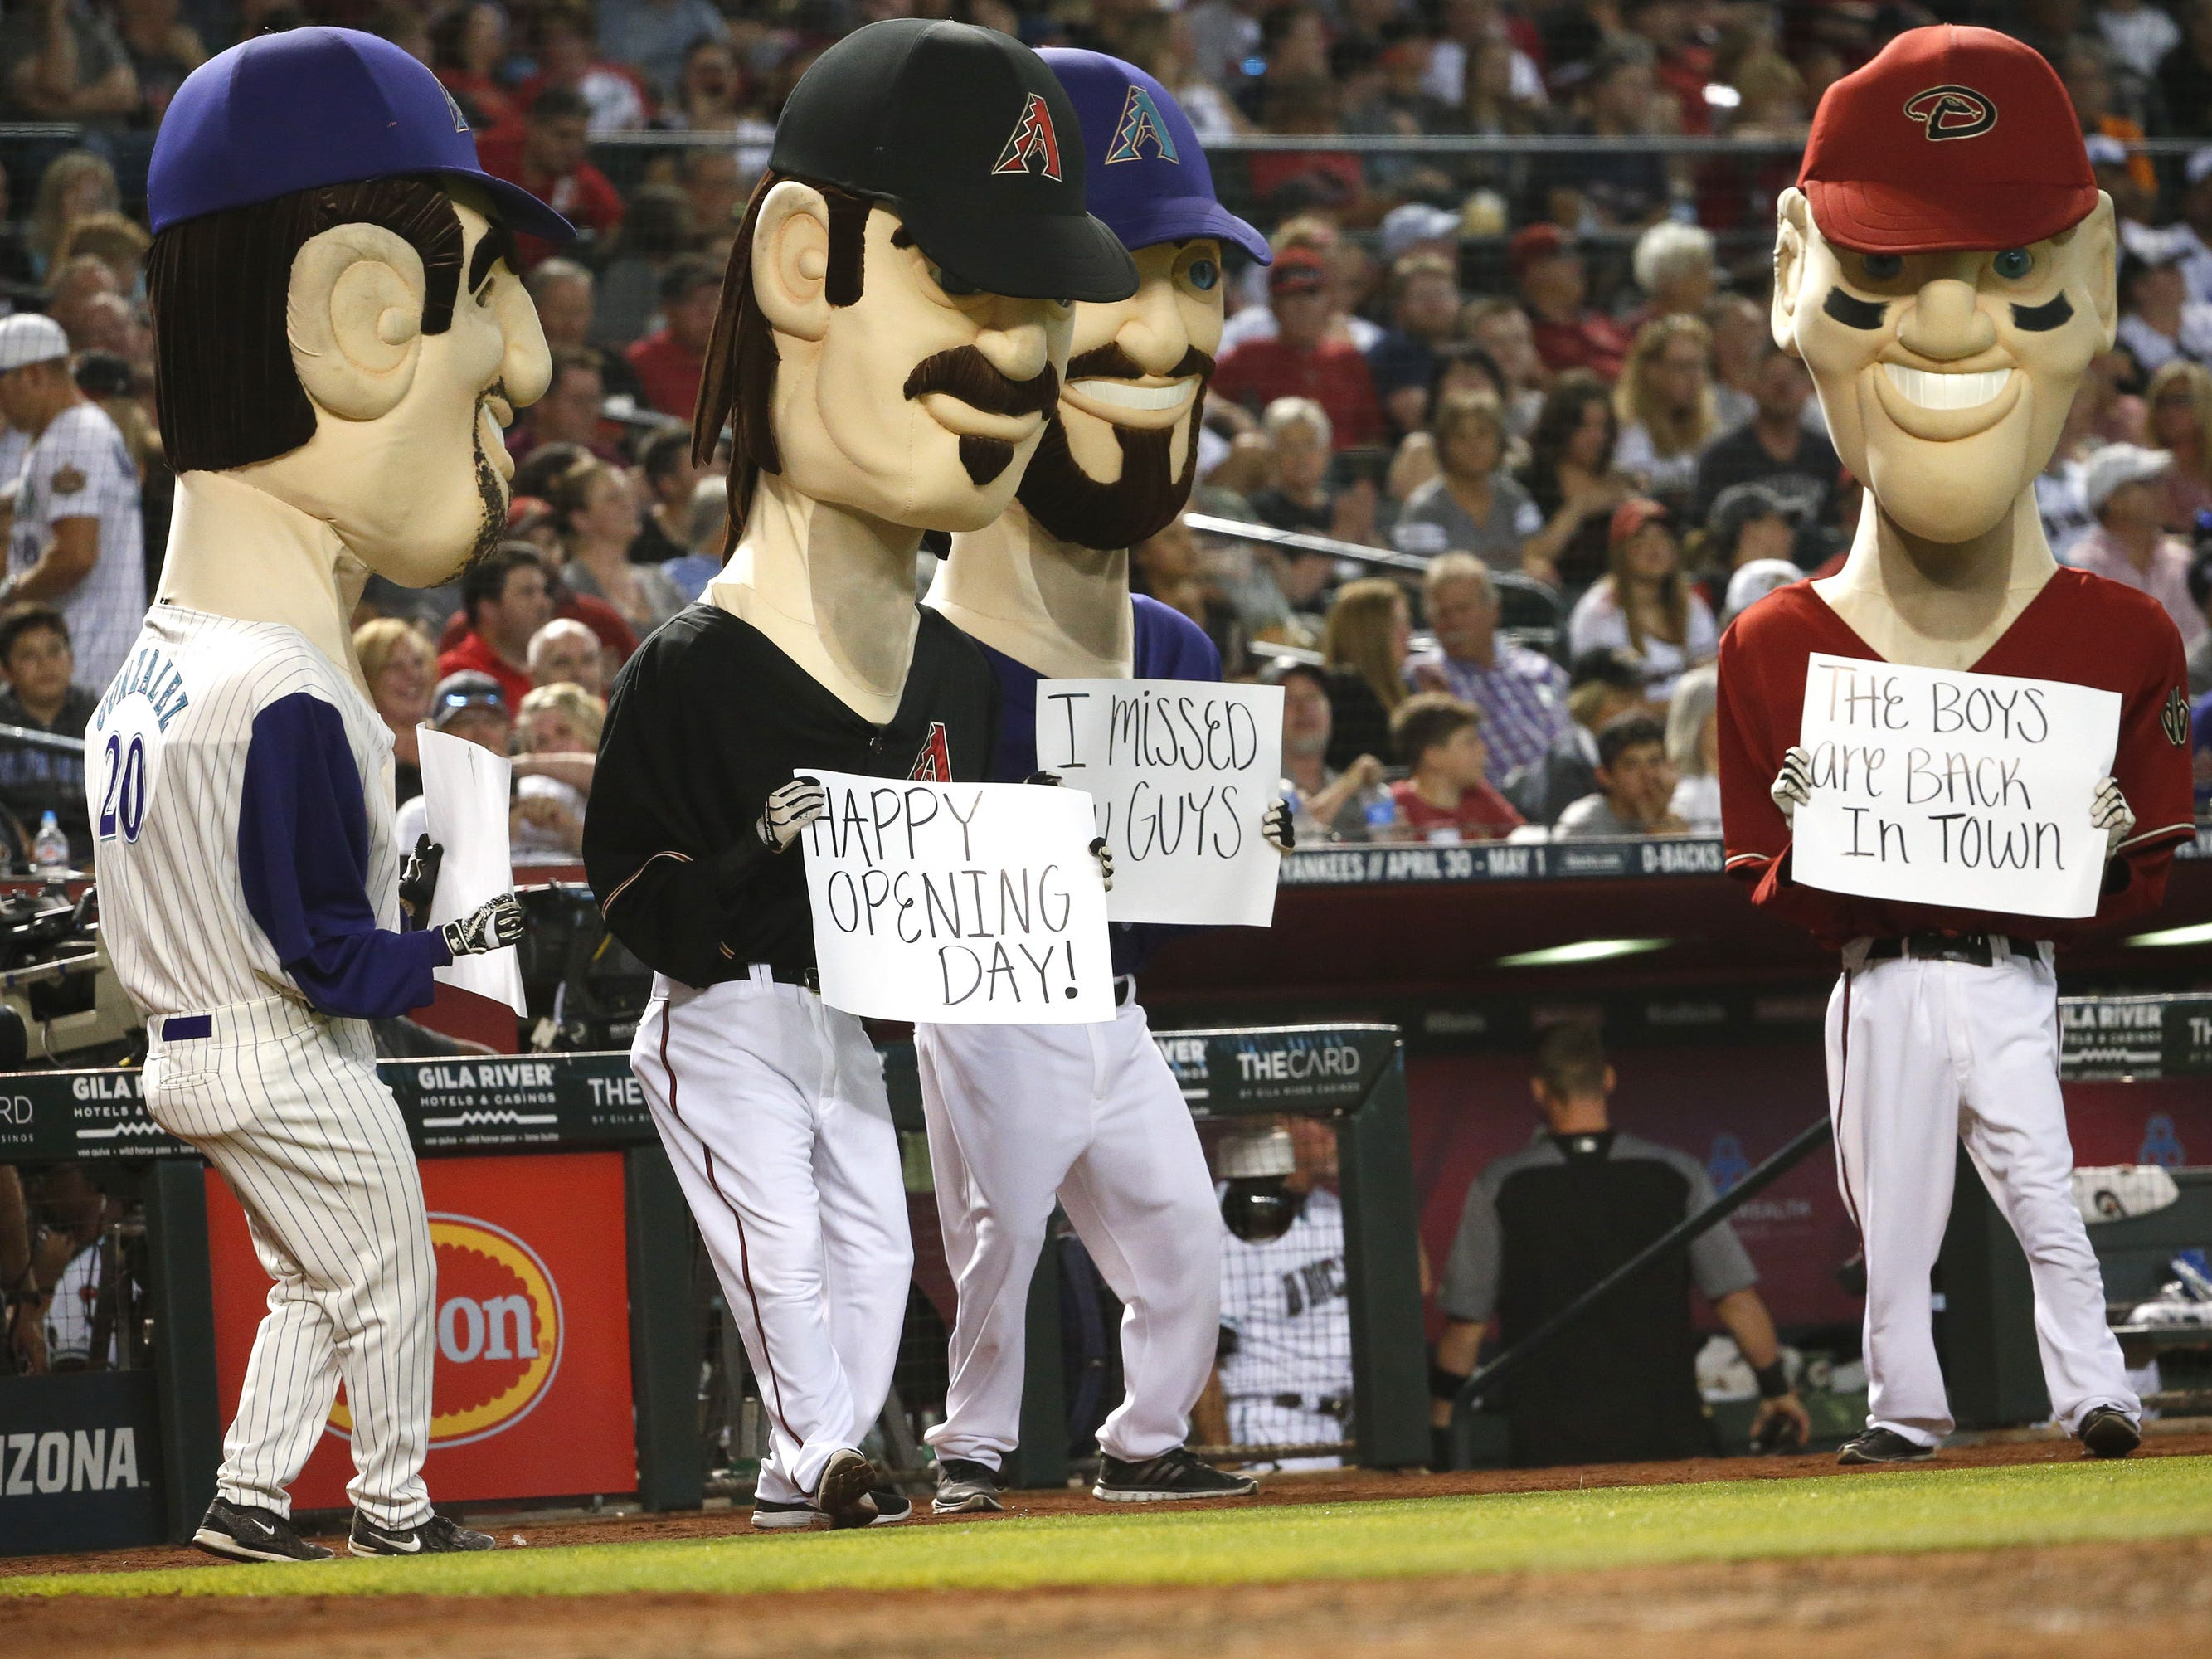 Arizona Diamondbacks legends welcome backs fans during Opening Day at Chase Field in Phoenix on April 5.